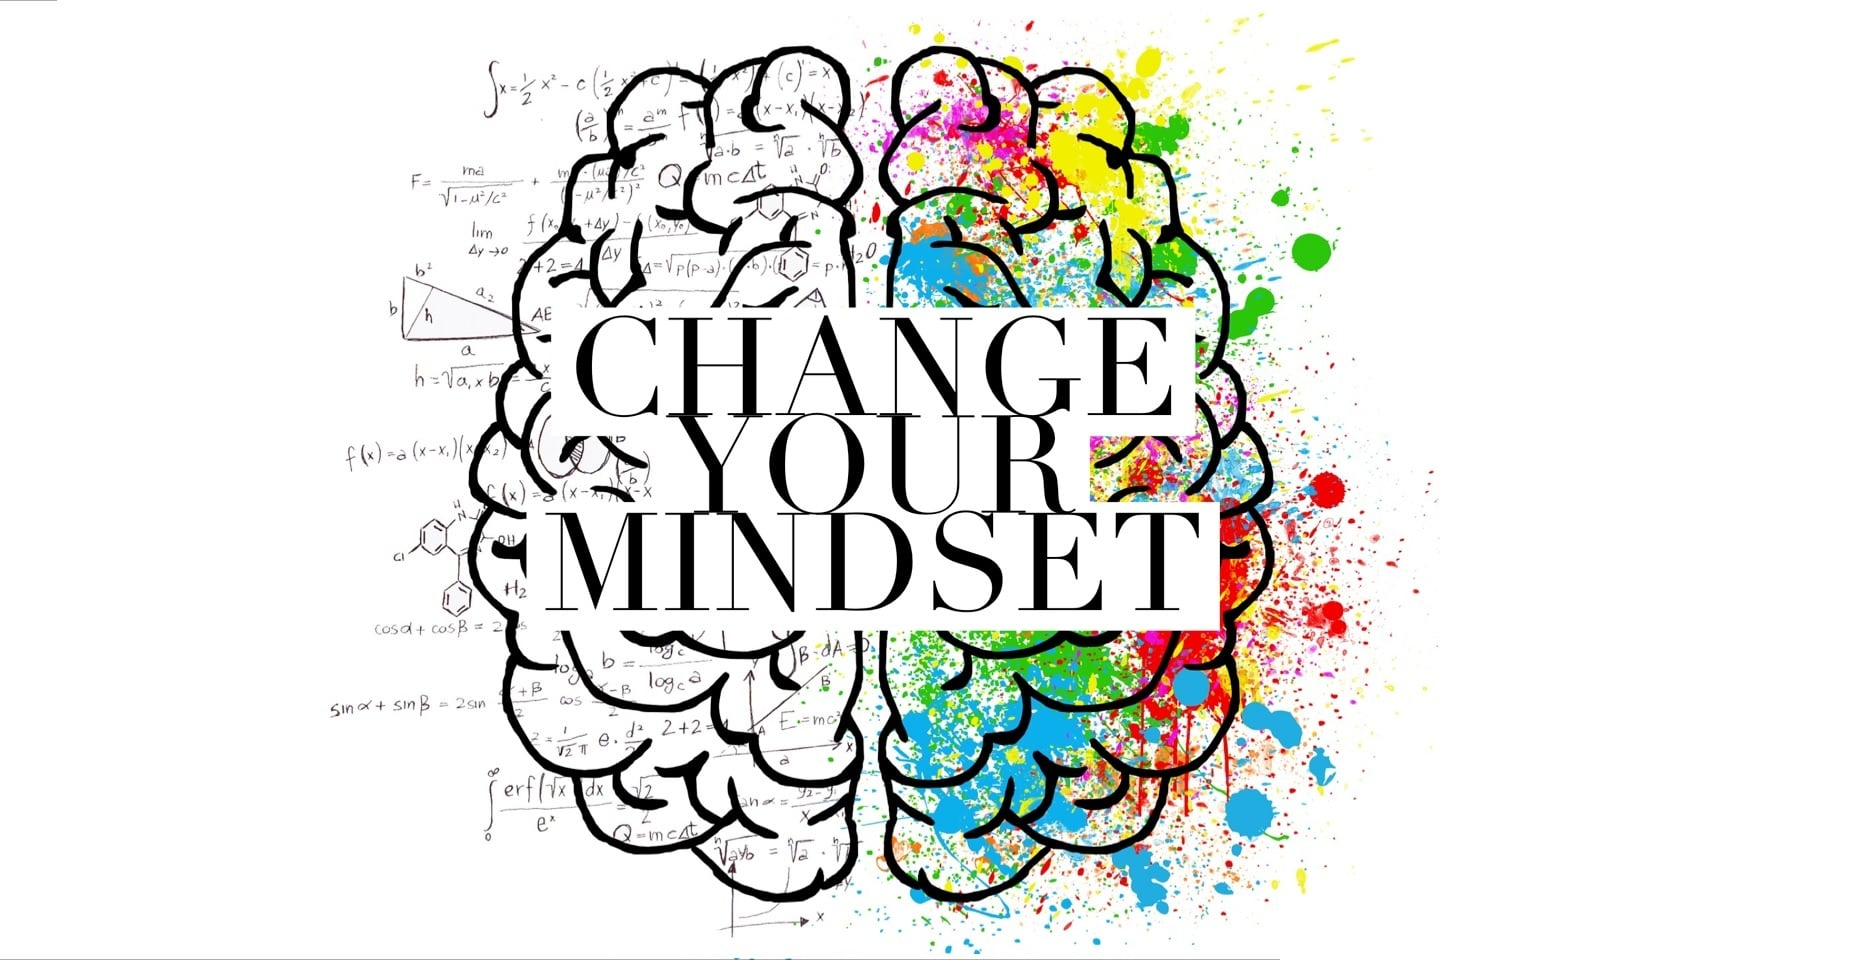 """Drawing of brain, with """"Change your mindset"""" superimposed over it. The left side of the brain has figures and equations and symbols, the right side has splashes of colour."""